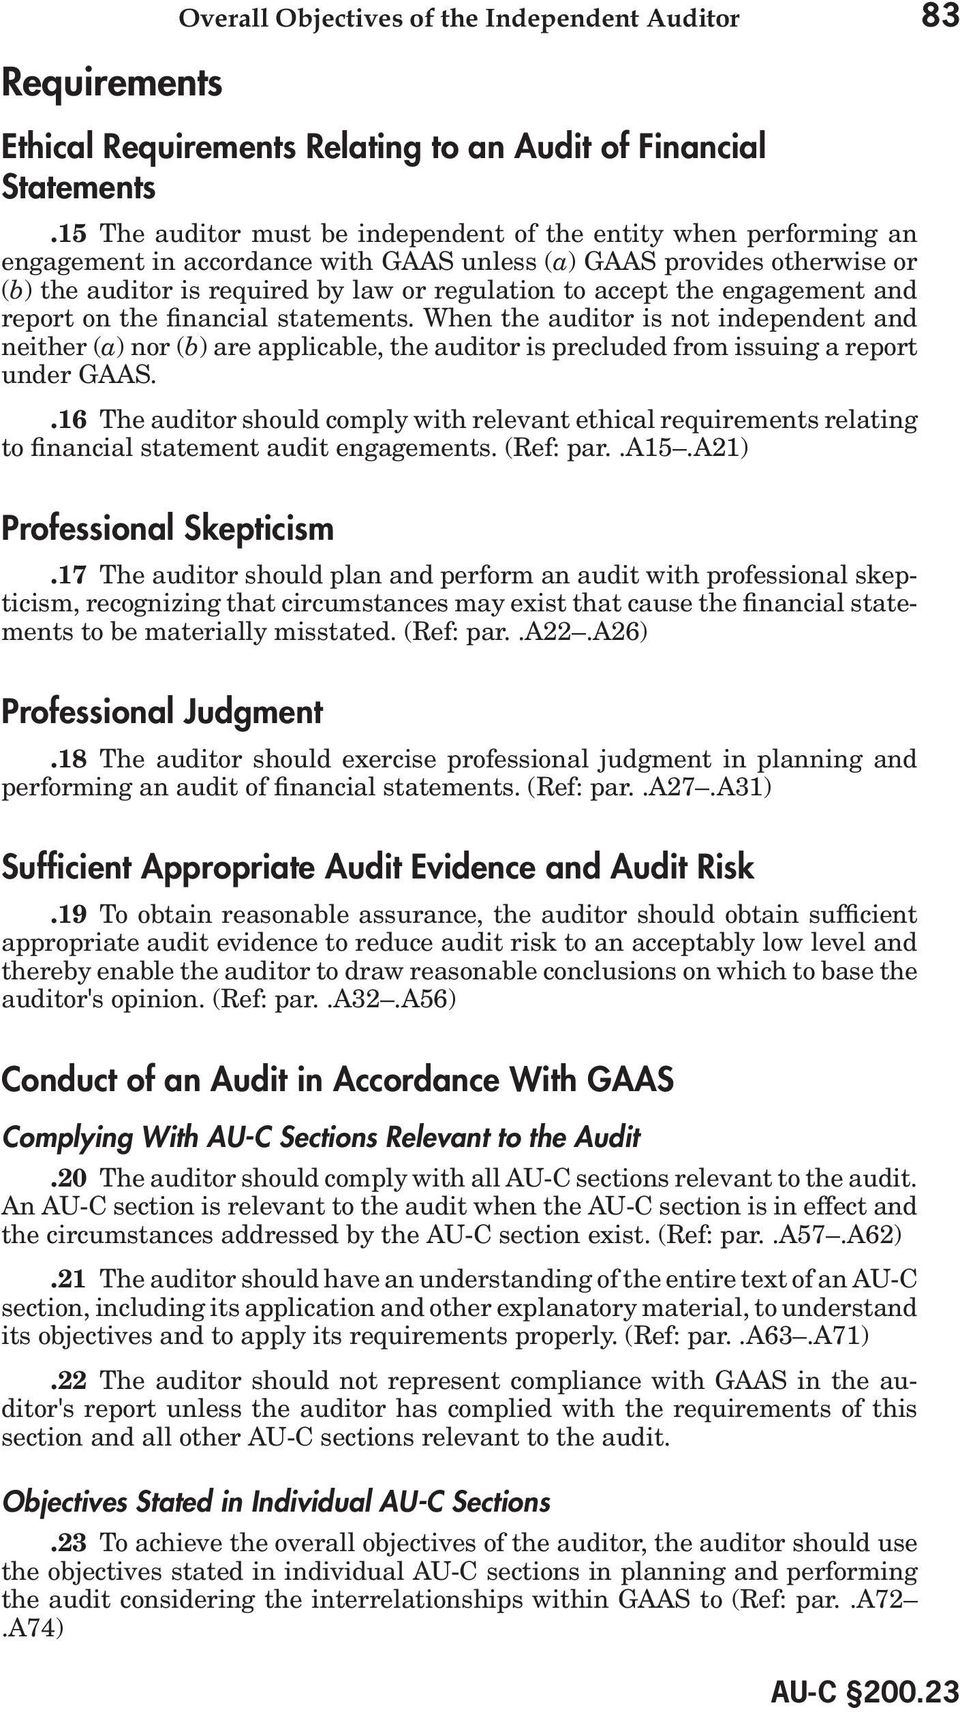 the engagement and report on the financial statements. When the auditor is not independent and neither (a) nor (b) are applicable, the auditor is precluded from issuing a report under GAAS.